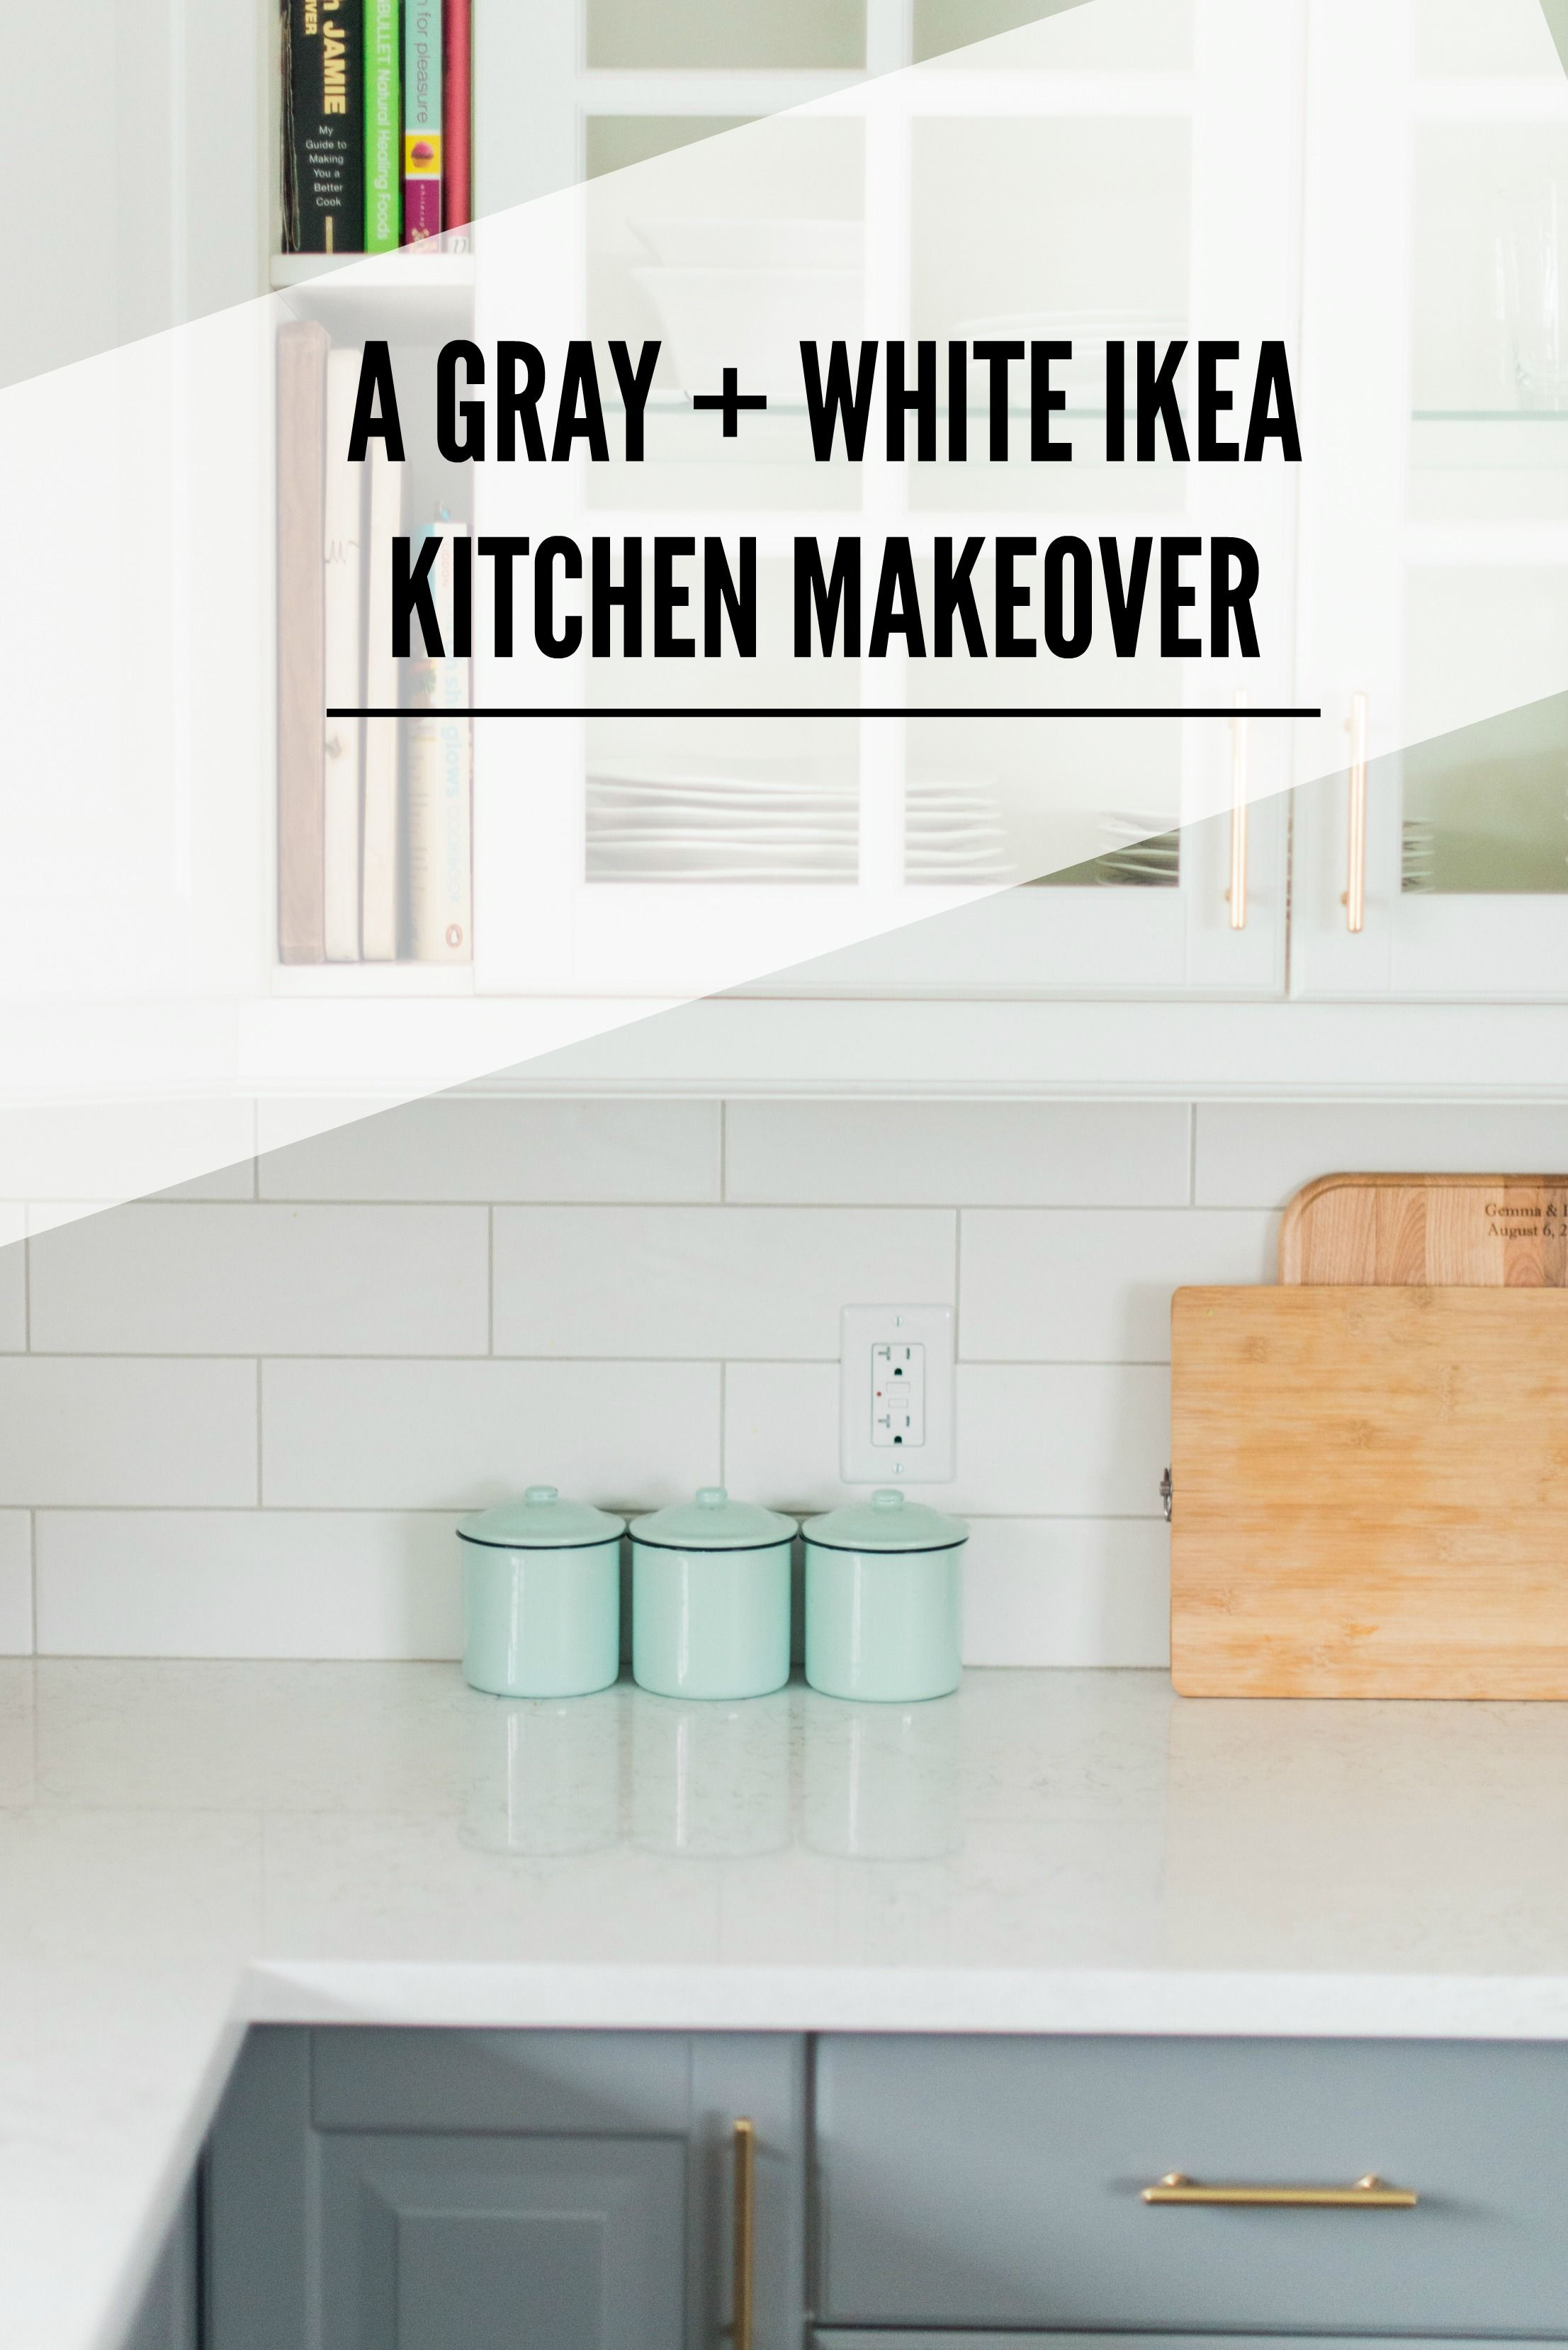 A Gray And White Budget Friendly Kitchen Makeover Using IKEA Cabinetry,  Marble Like Quartz Countertops